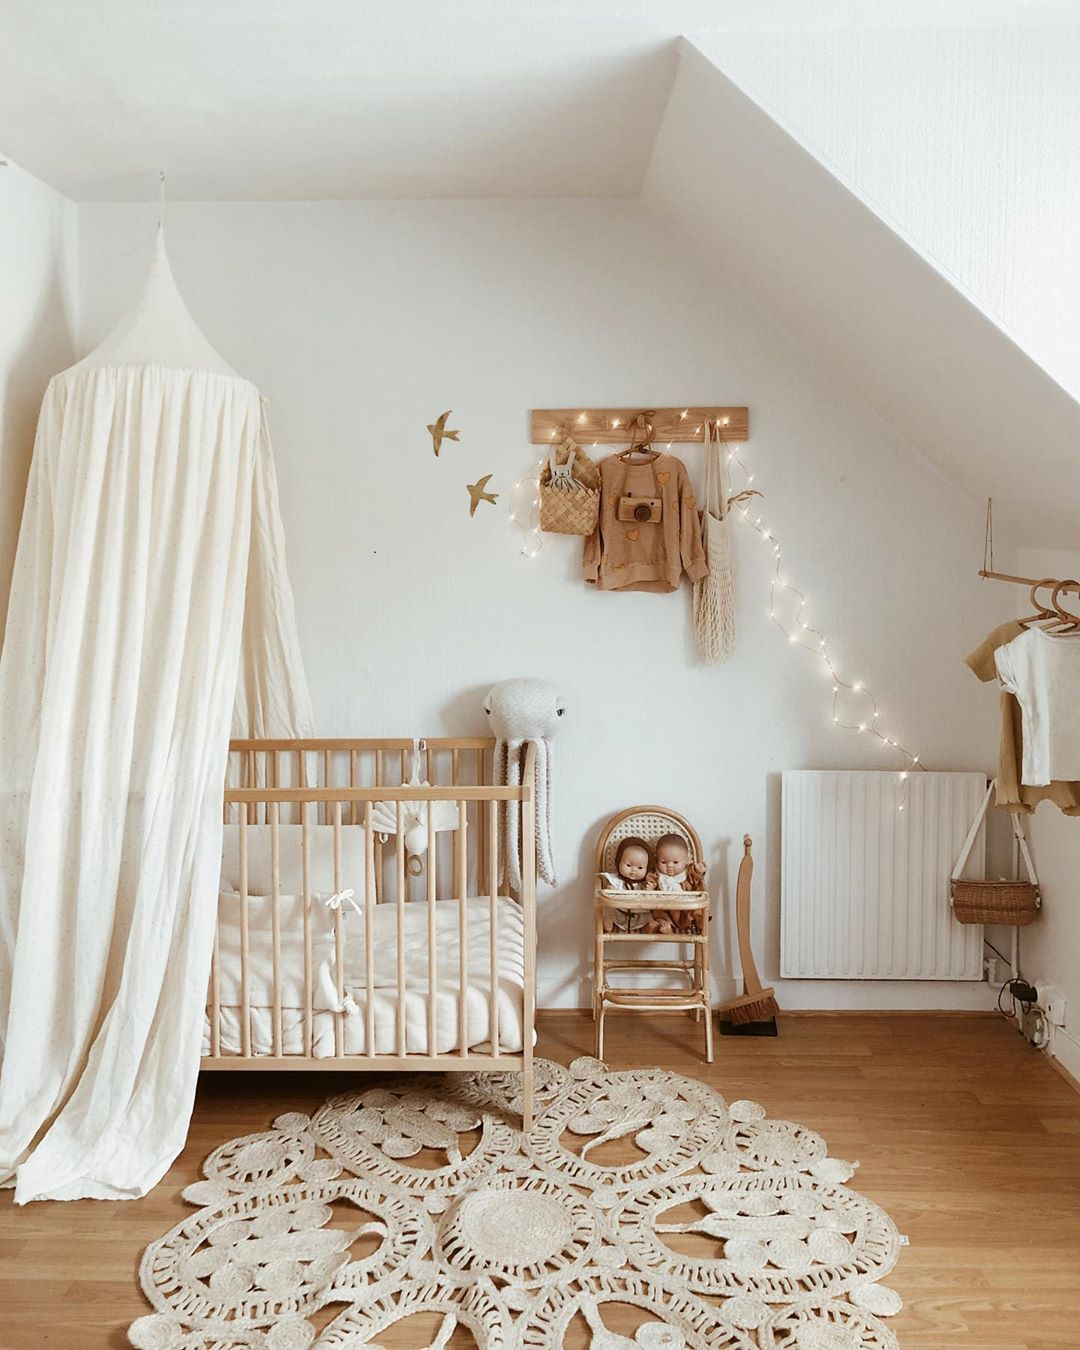 20++ Inspiration chambre bebe fille ideas in 2021